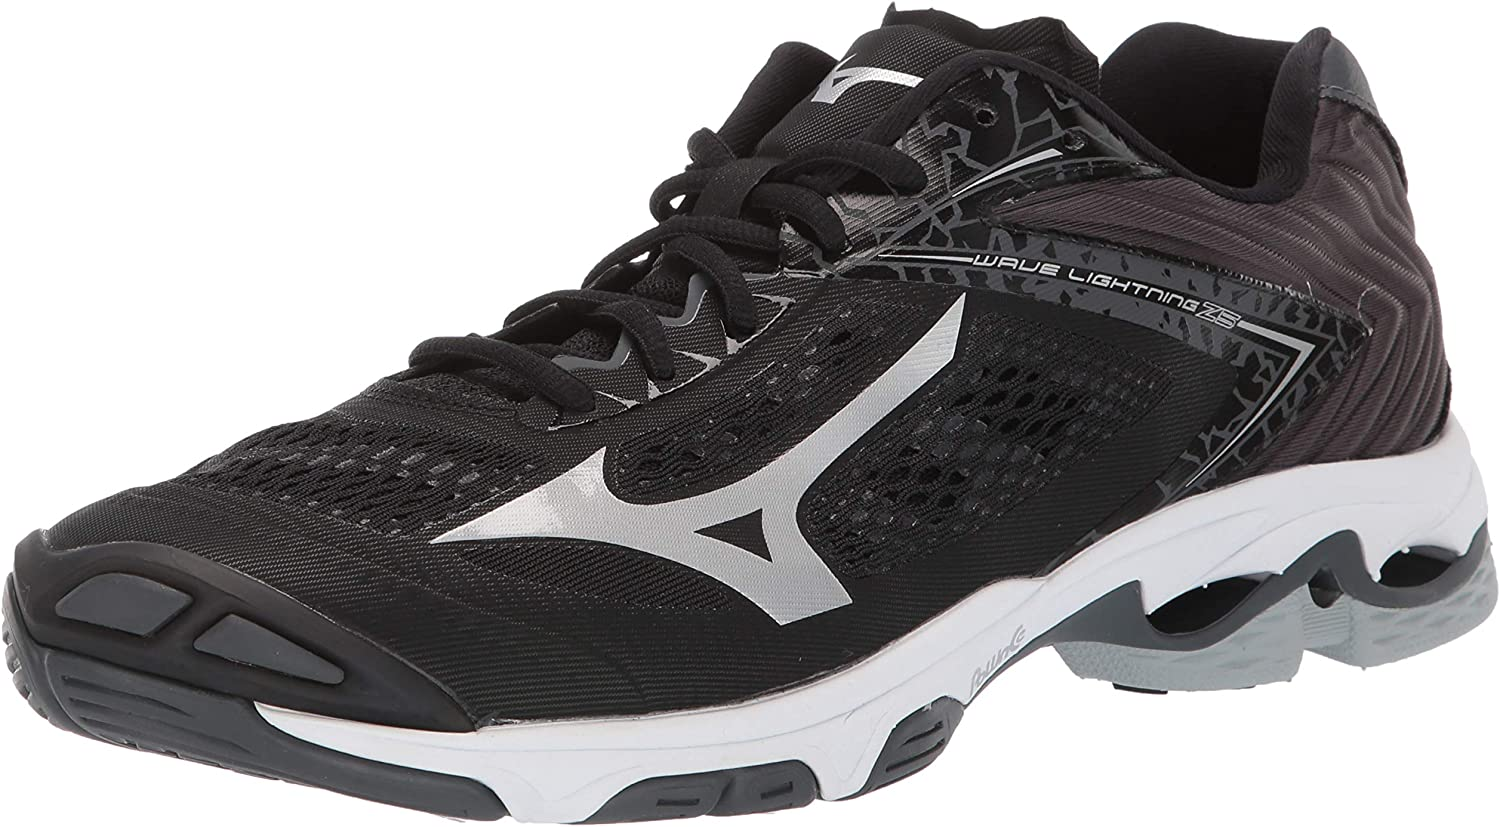 Max 90% OFF Mizuno Men's Safety and trust Wave Lightning Women's Volleyball Shoe Z5